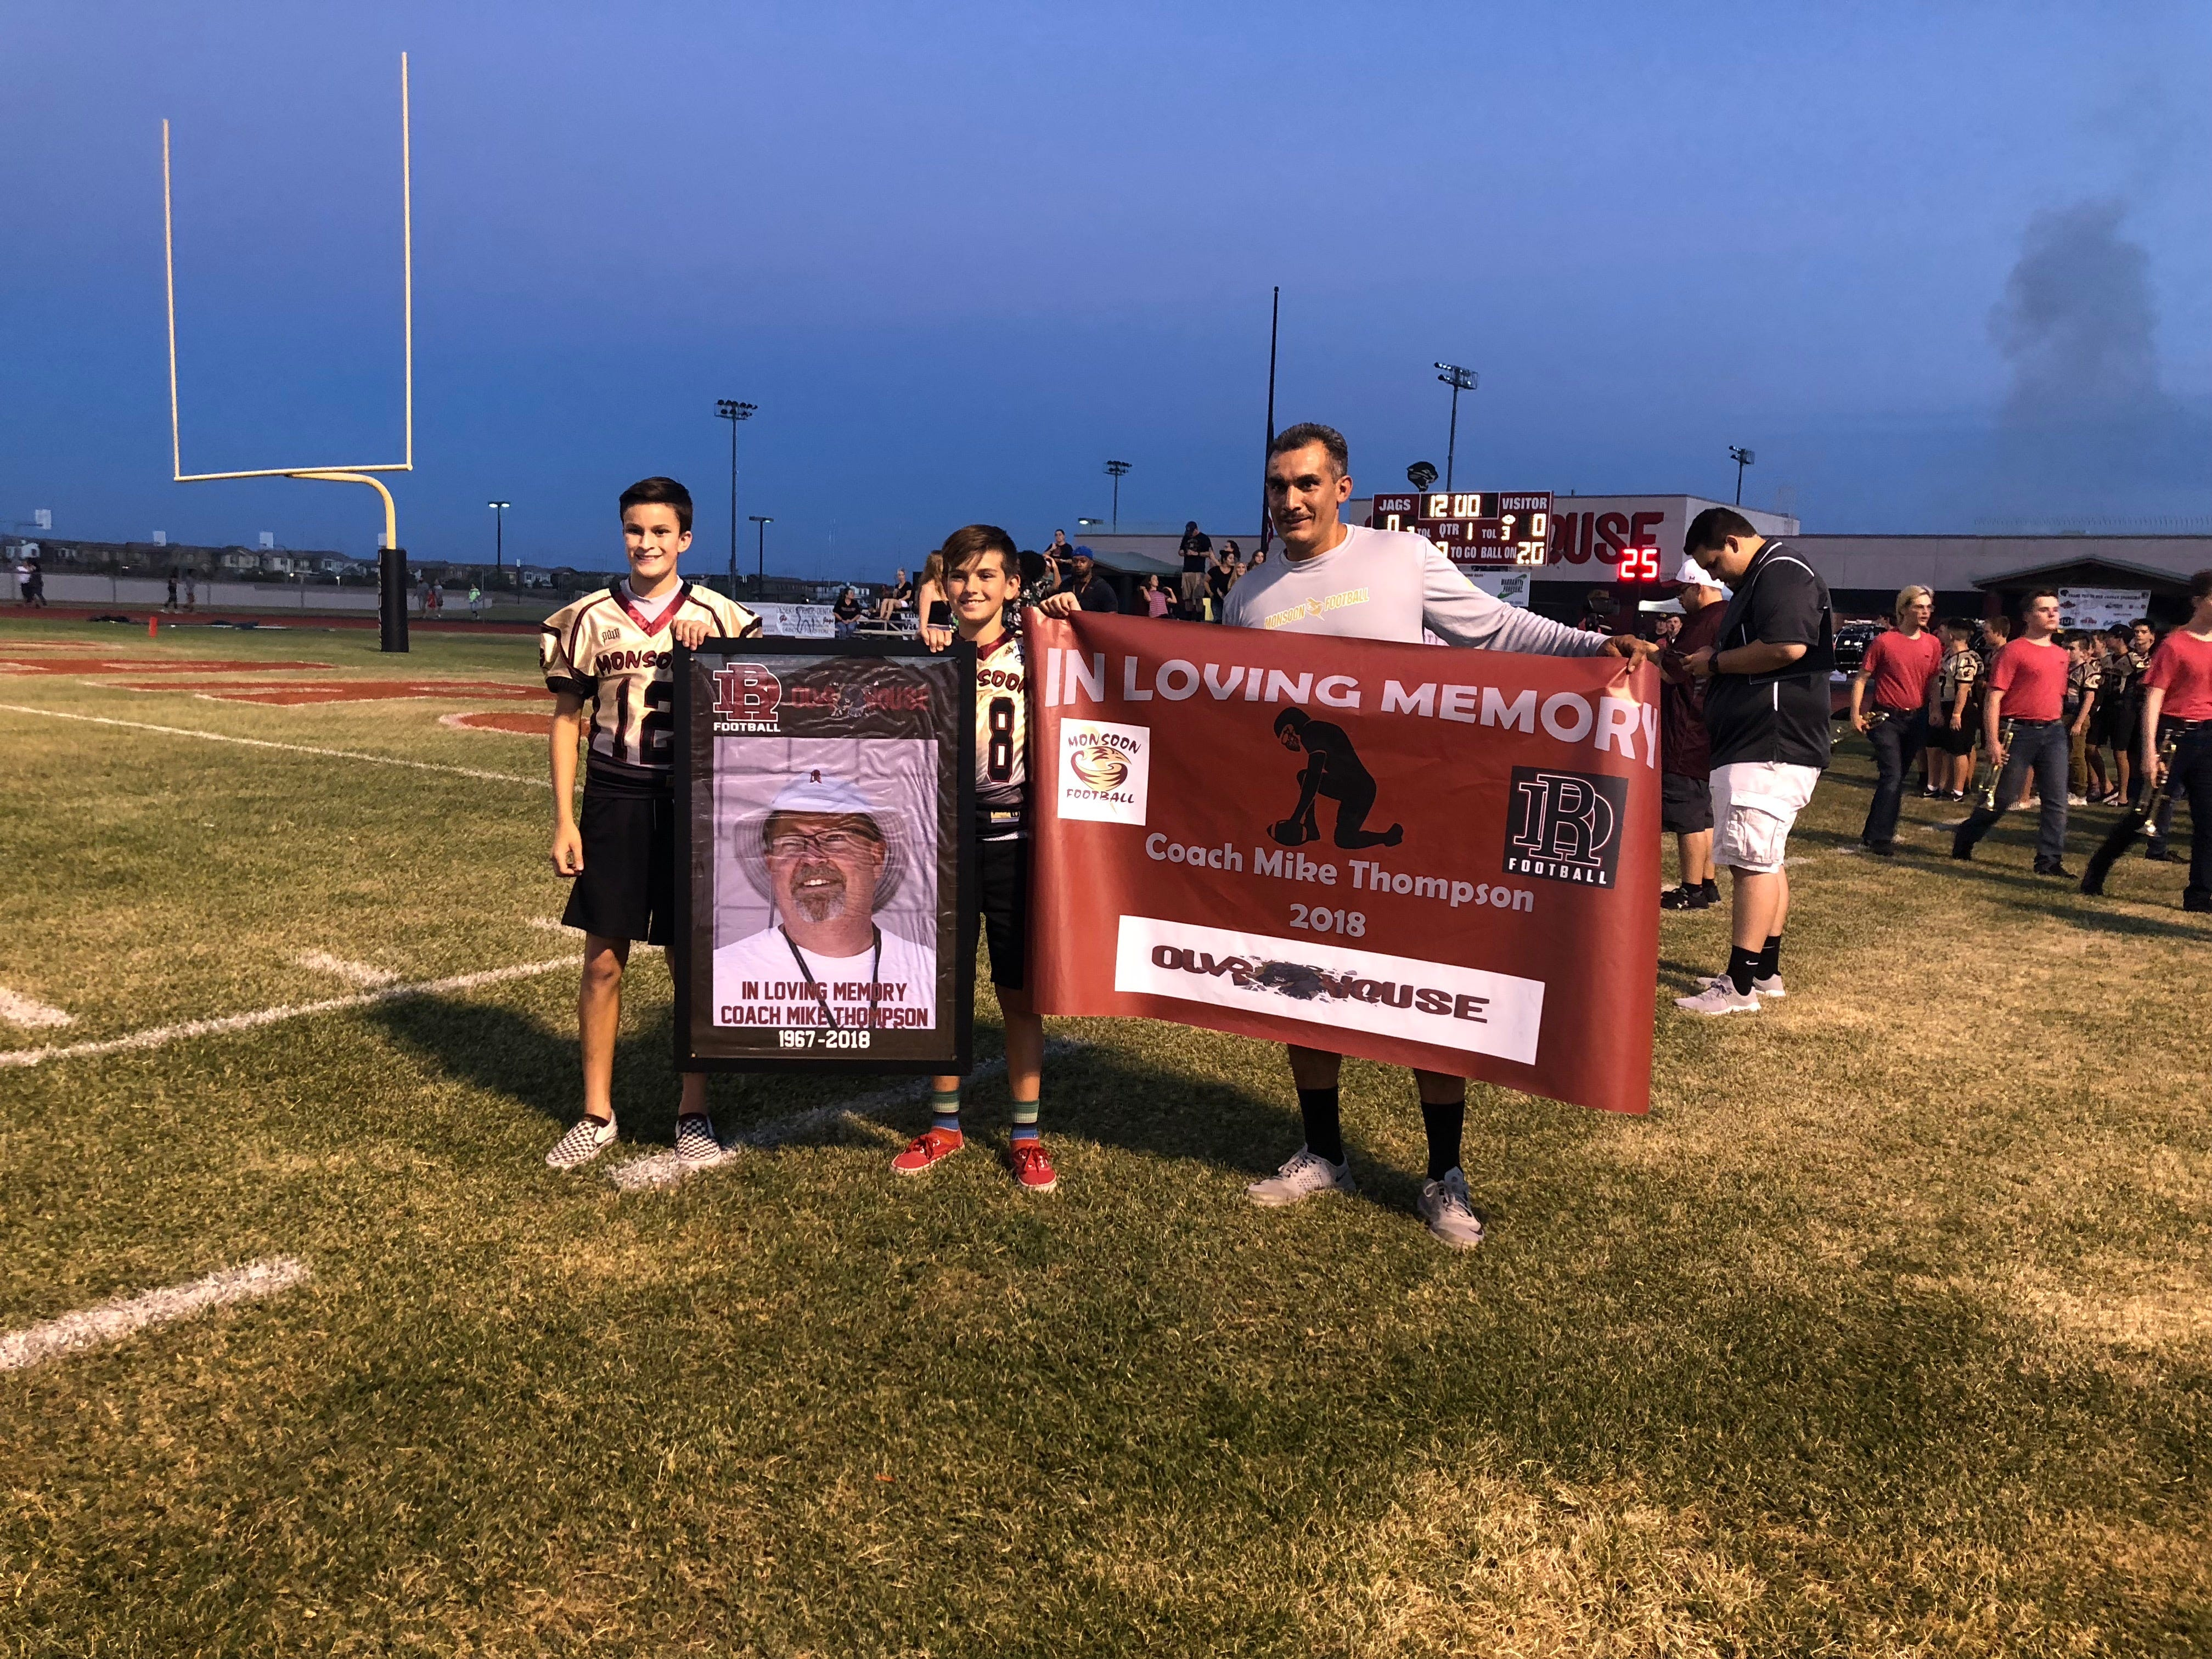 Late Desert Ridge assistant coach Mike Thompson was honored prior to there game against Skyline